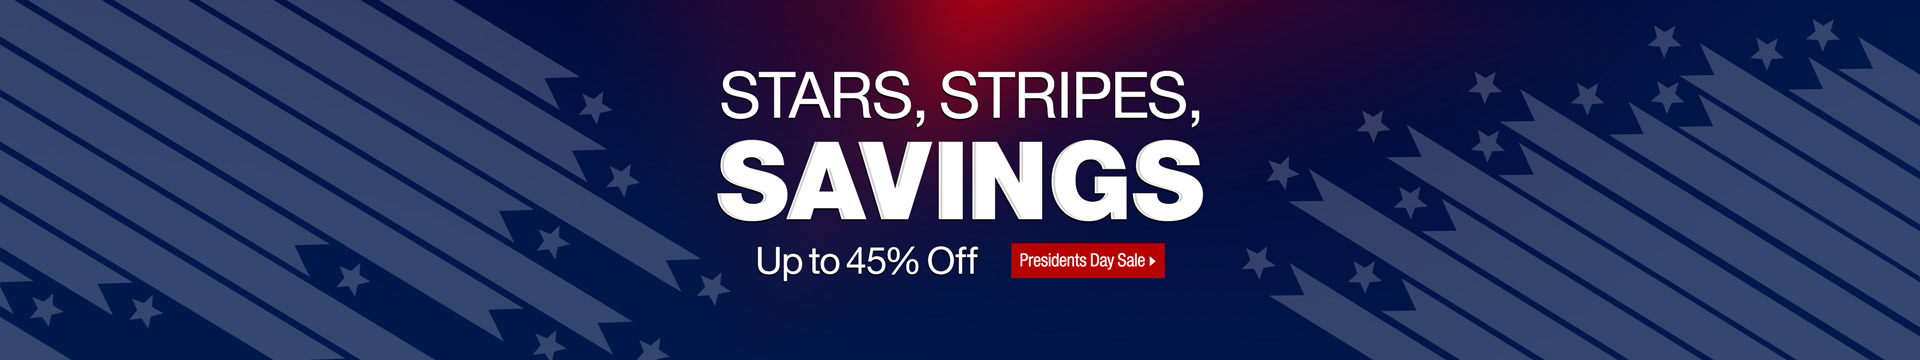 Stars, Stripes, Savings